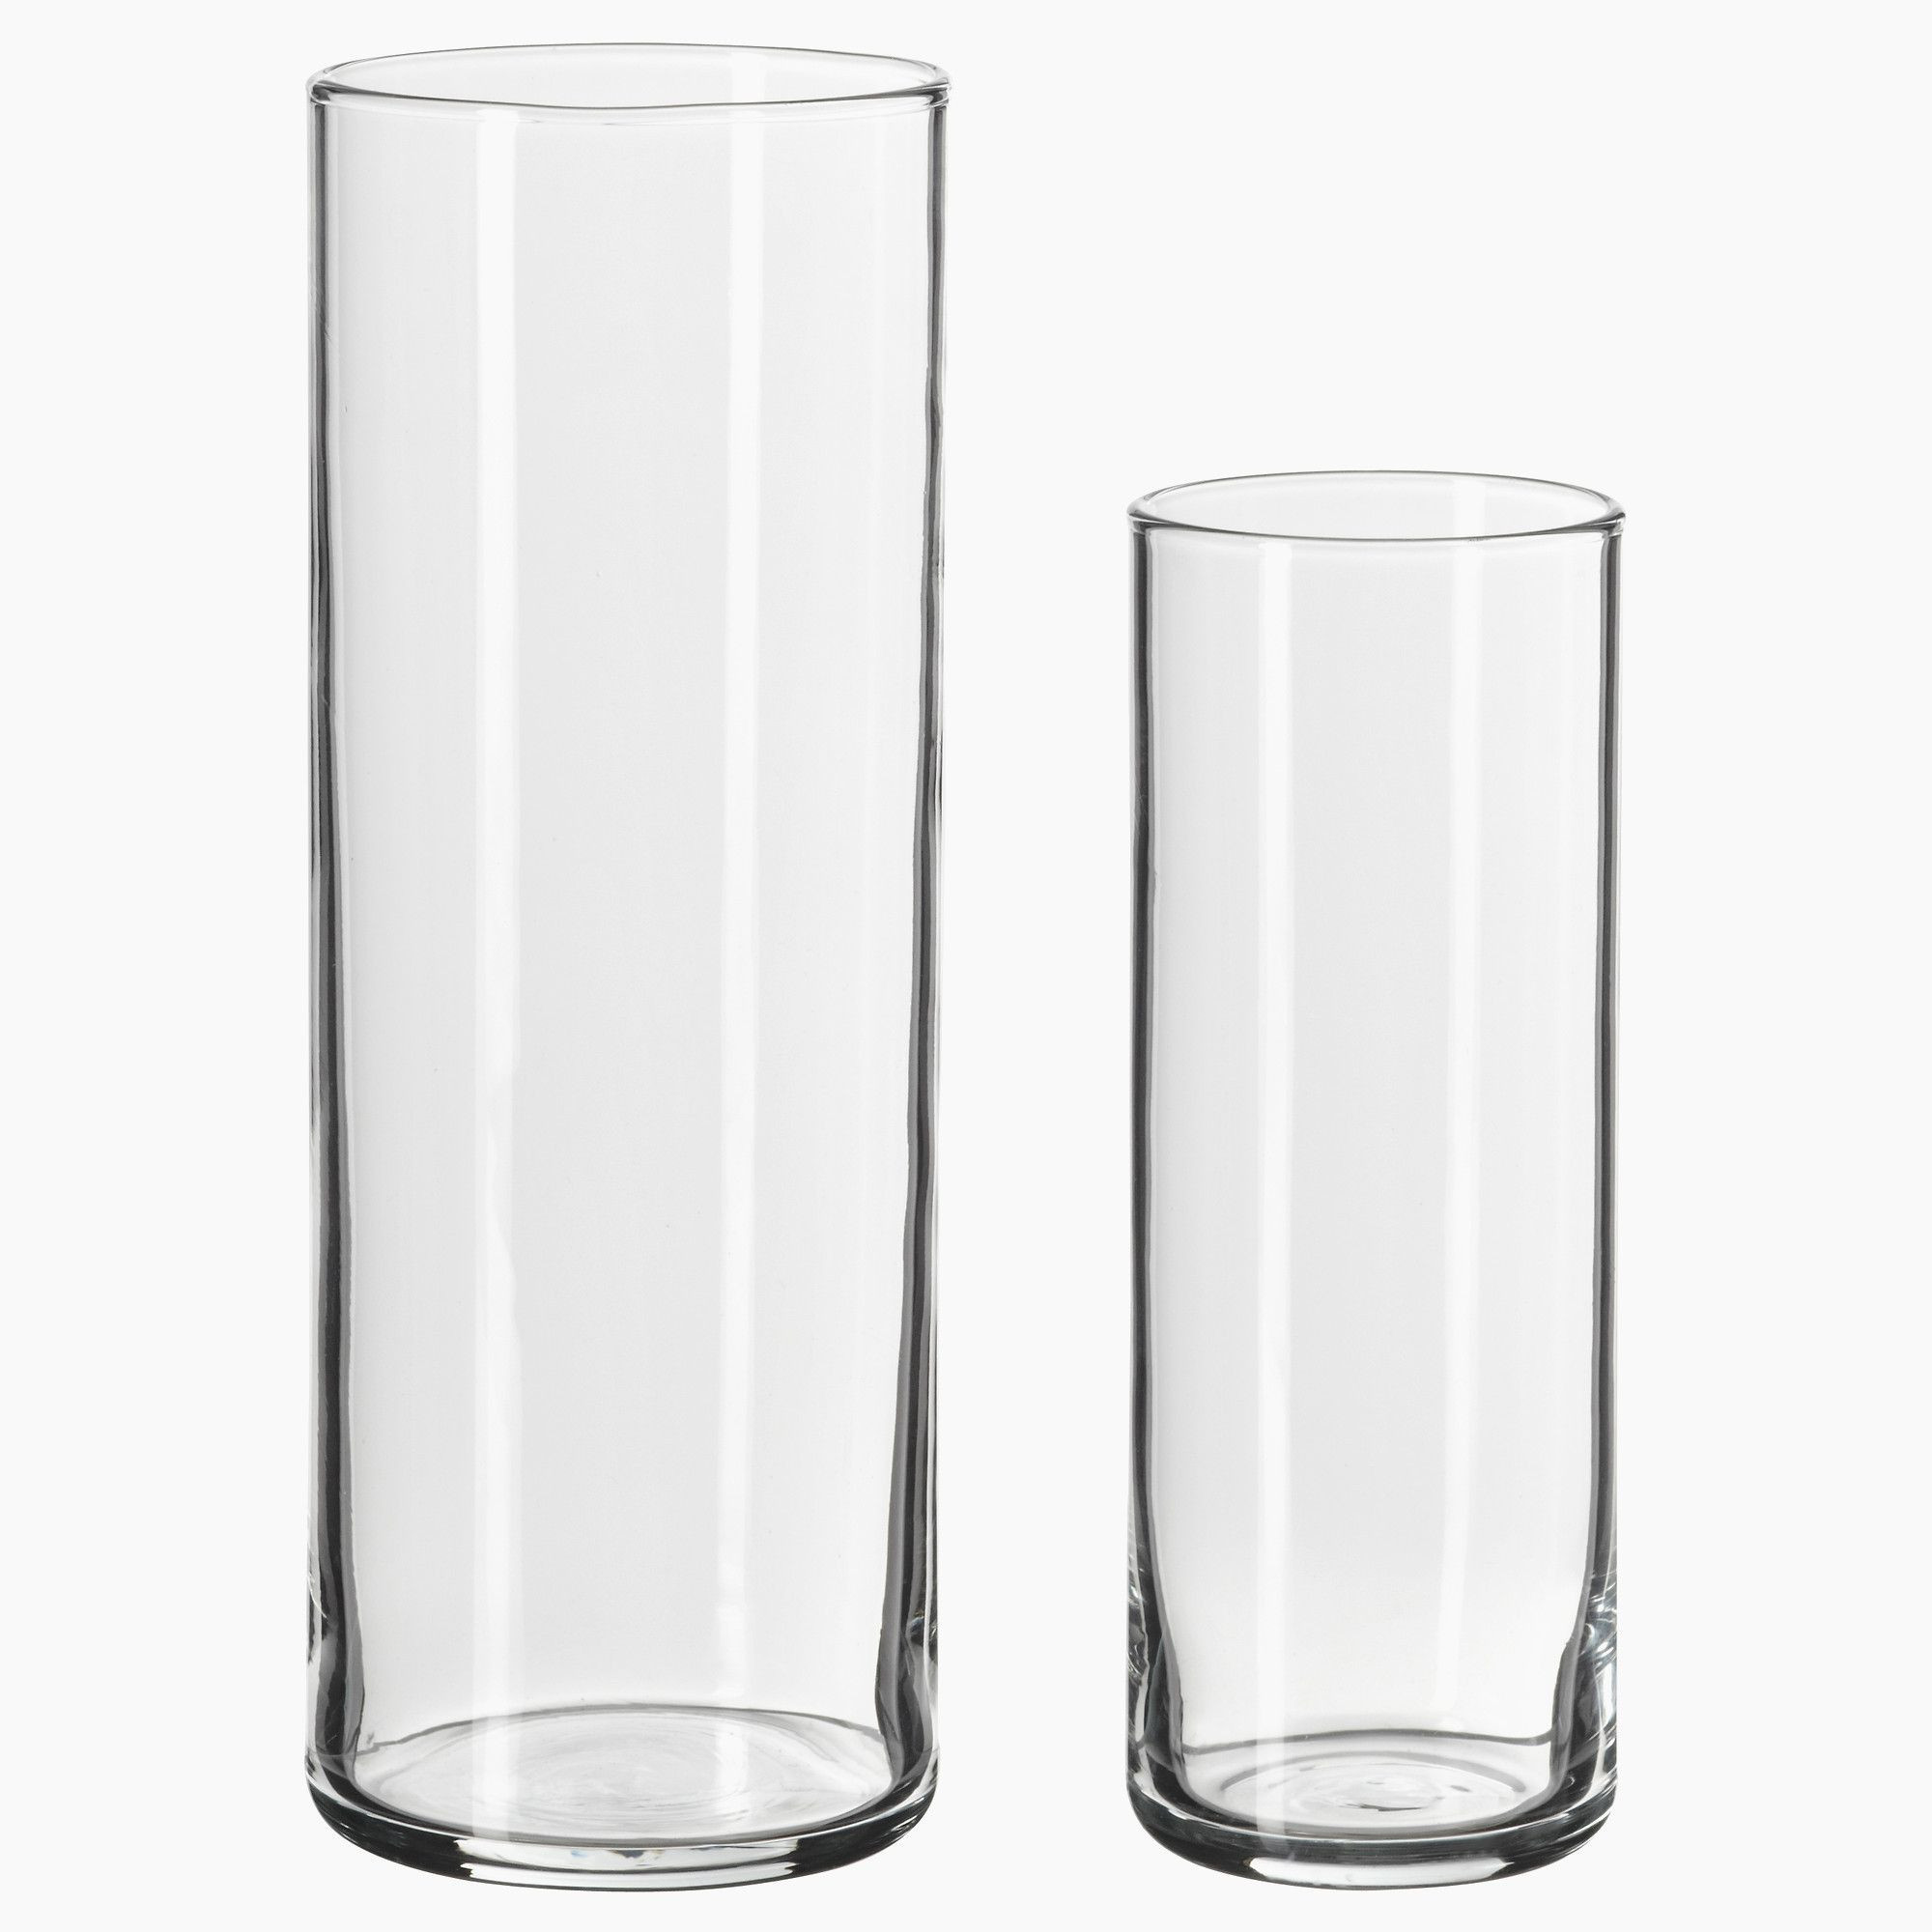 blown glass vases for sale of 24 tall vases for sale the weekly world pertaining to wooden wall vase new tall vase centerpiece ideas vases flowers in